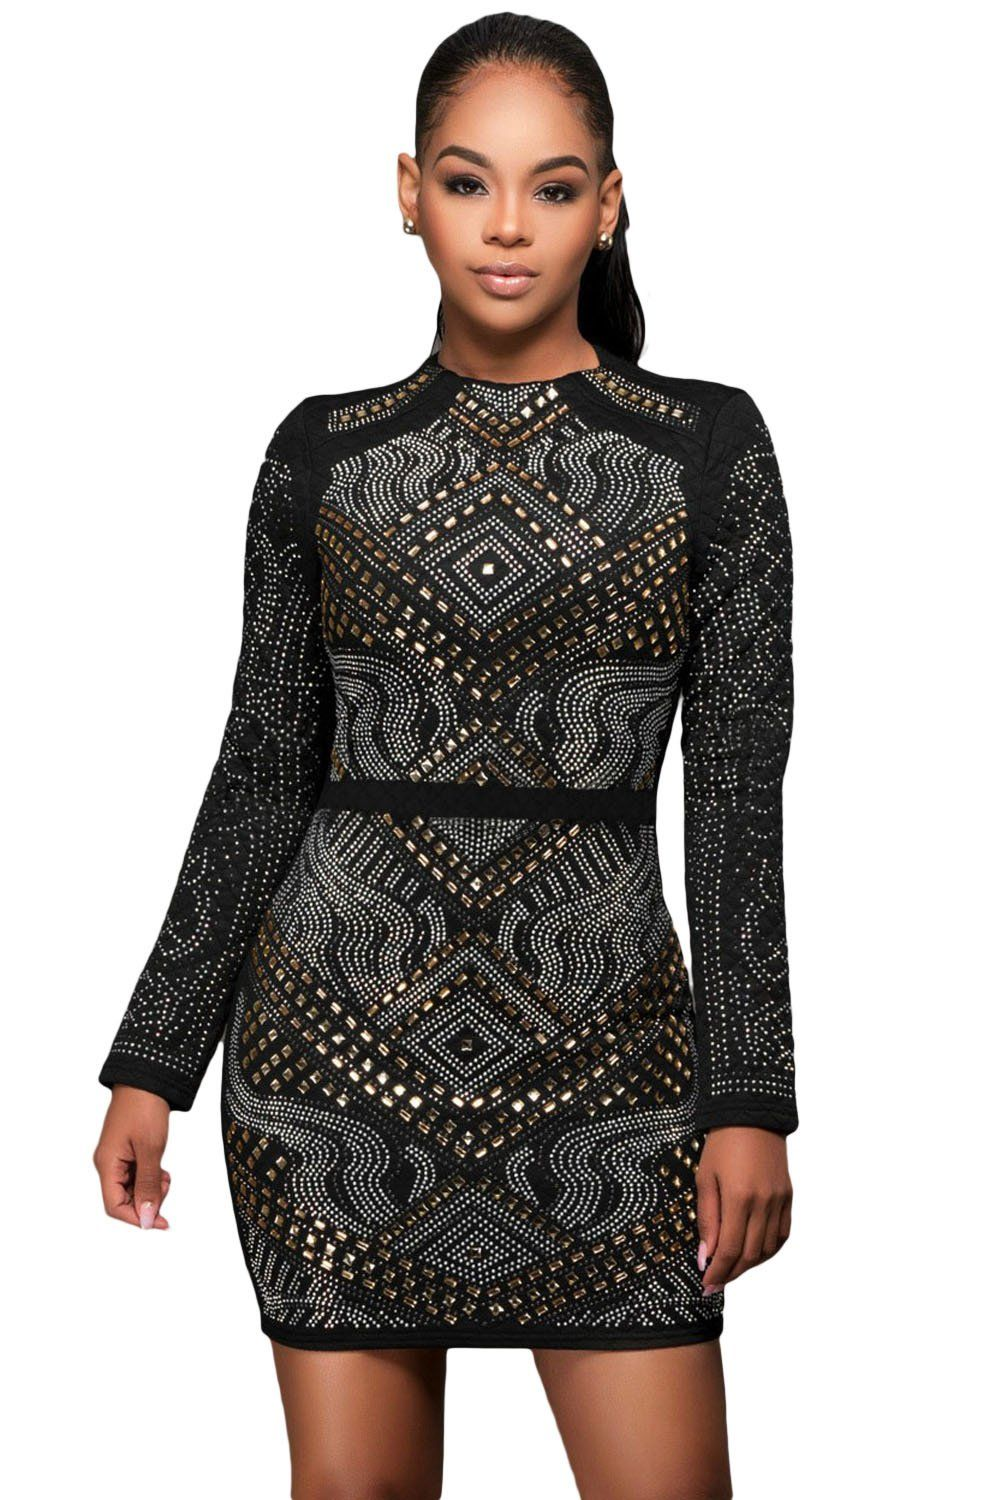 Black mini jeweled quilted long sleeves dress with images